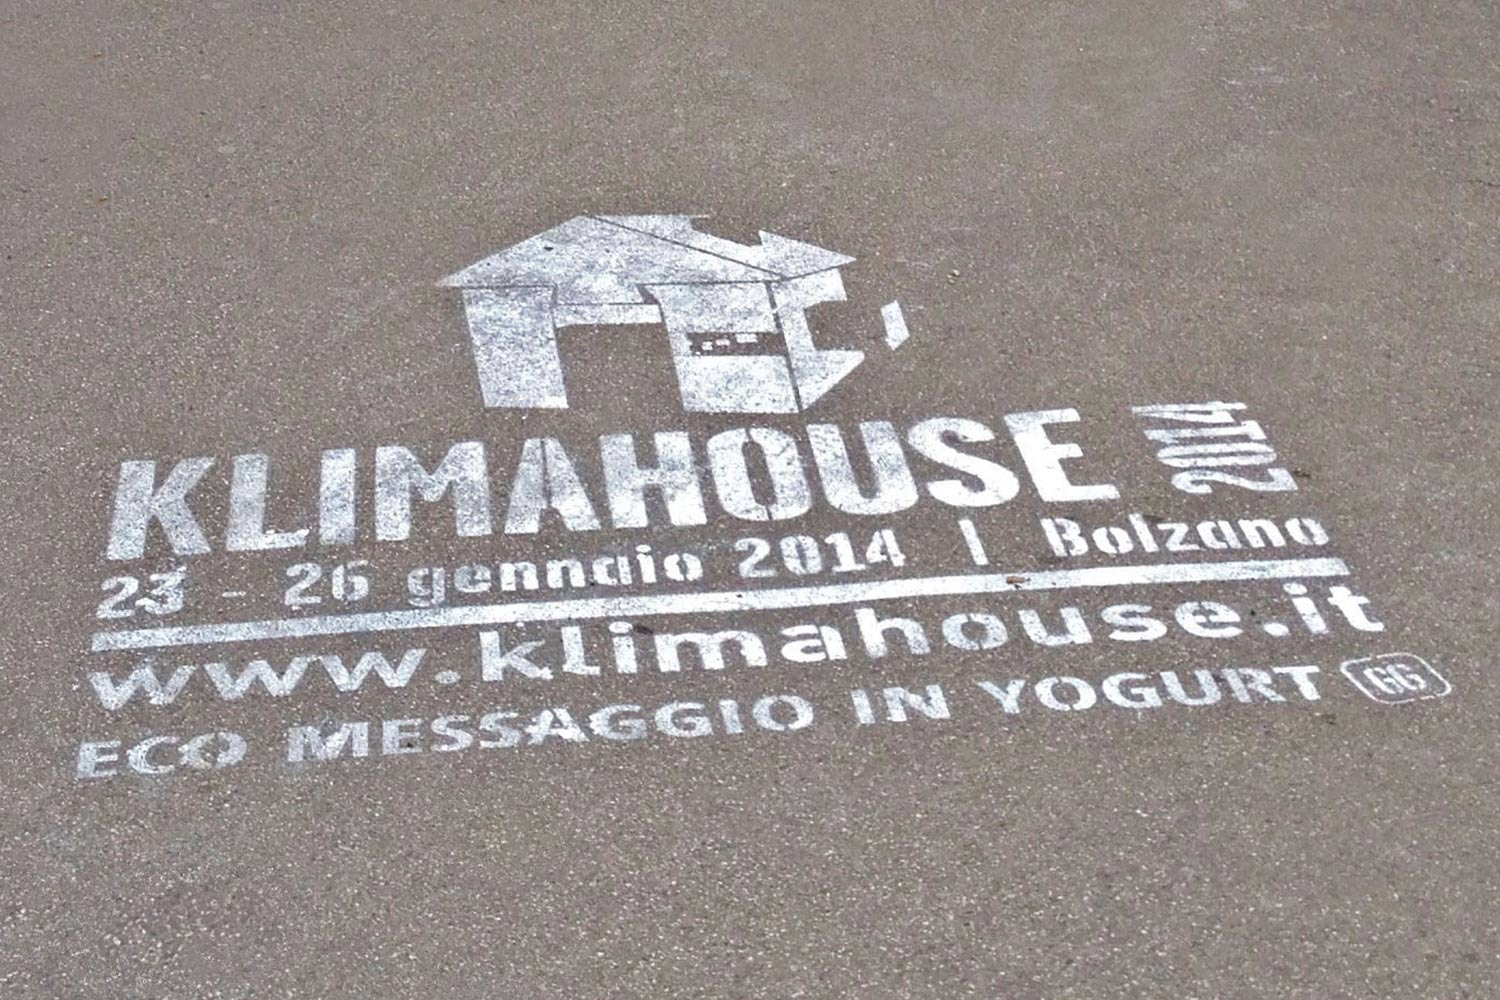 outdoor advertising fiera di bolzano klimahouse